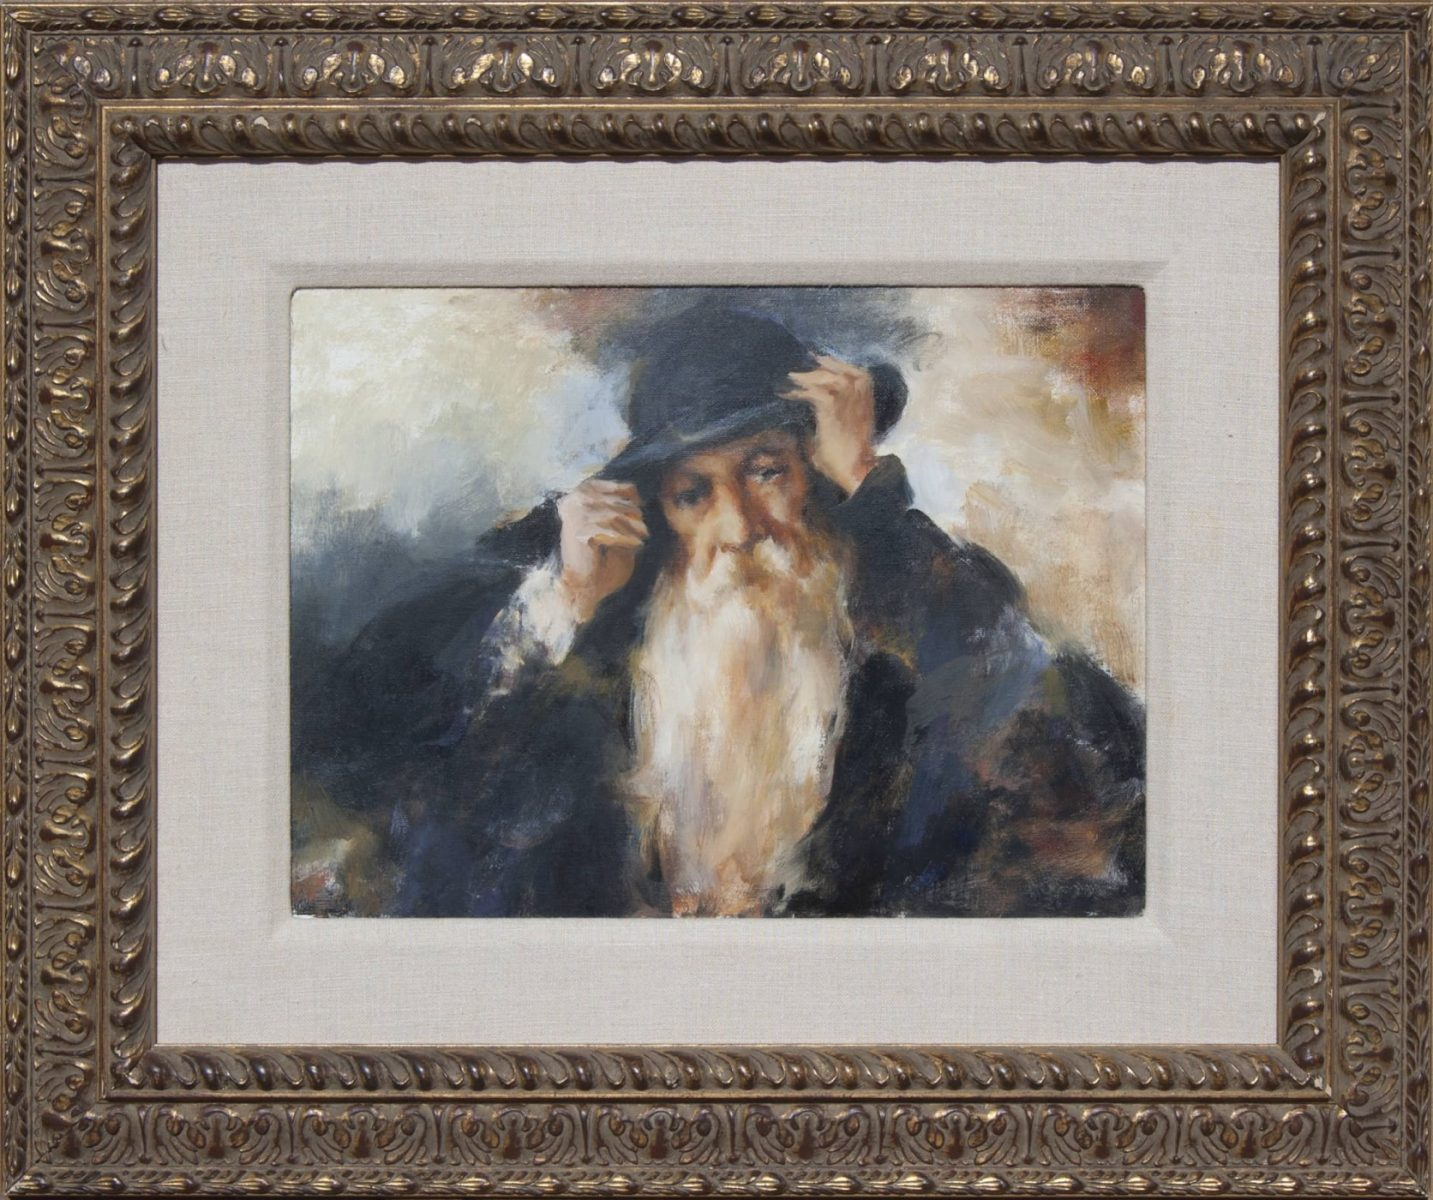 Portrait painting of a colorado trapper by Ramon Kelley